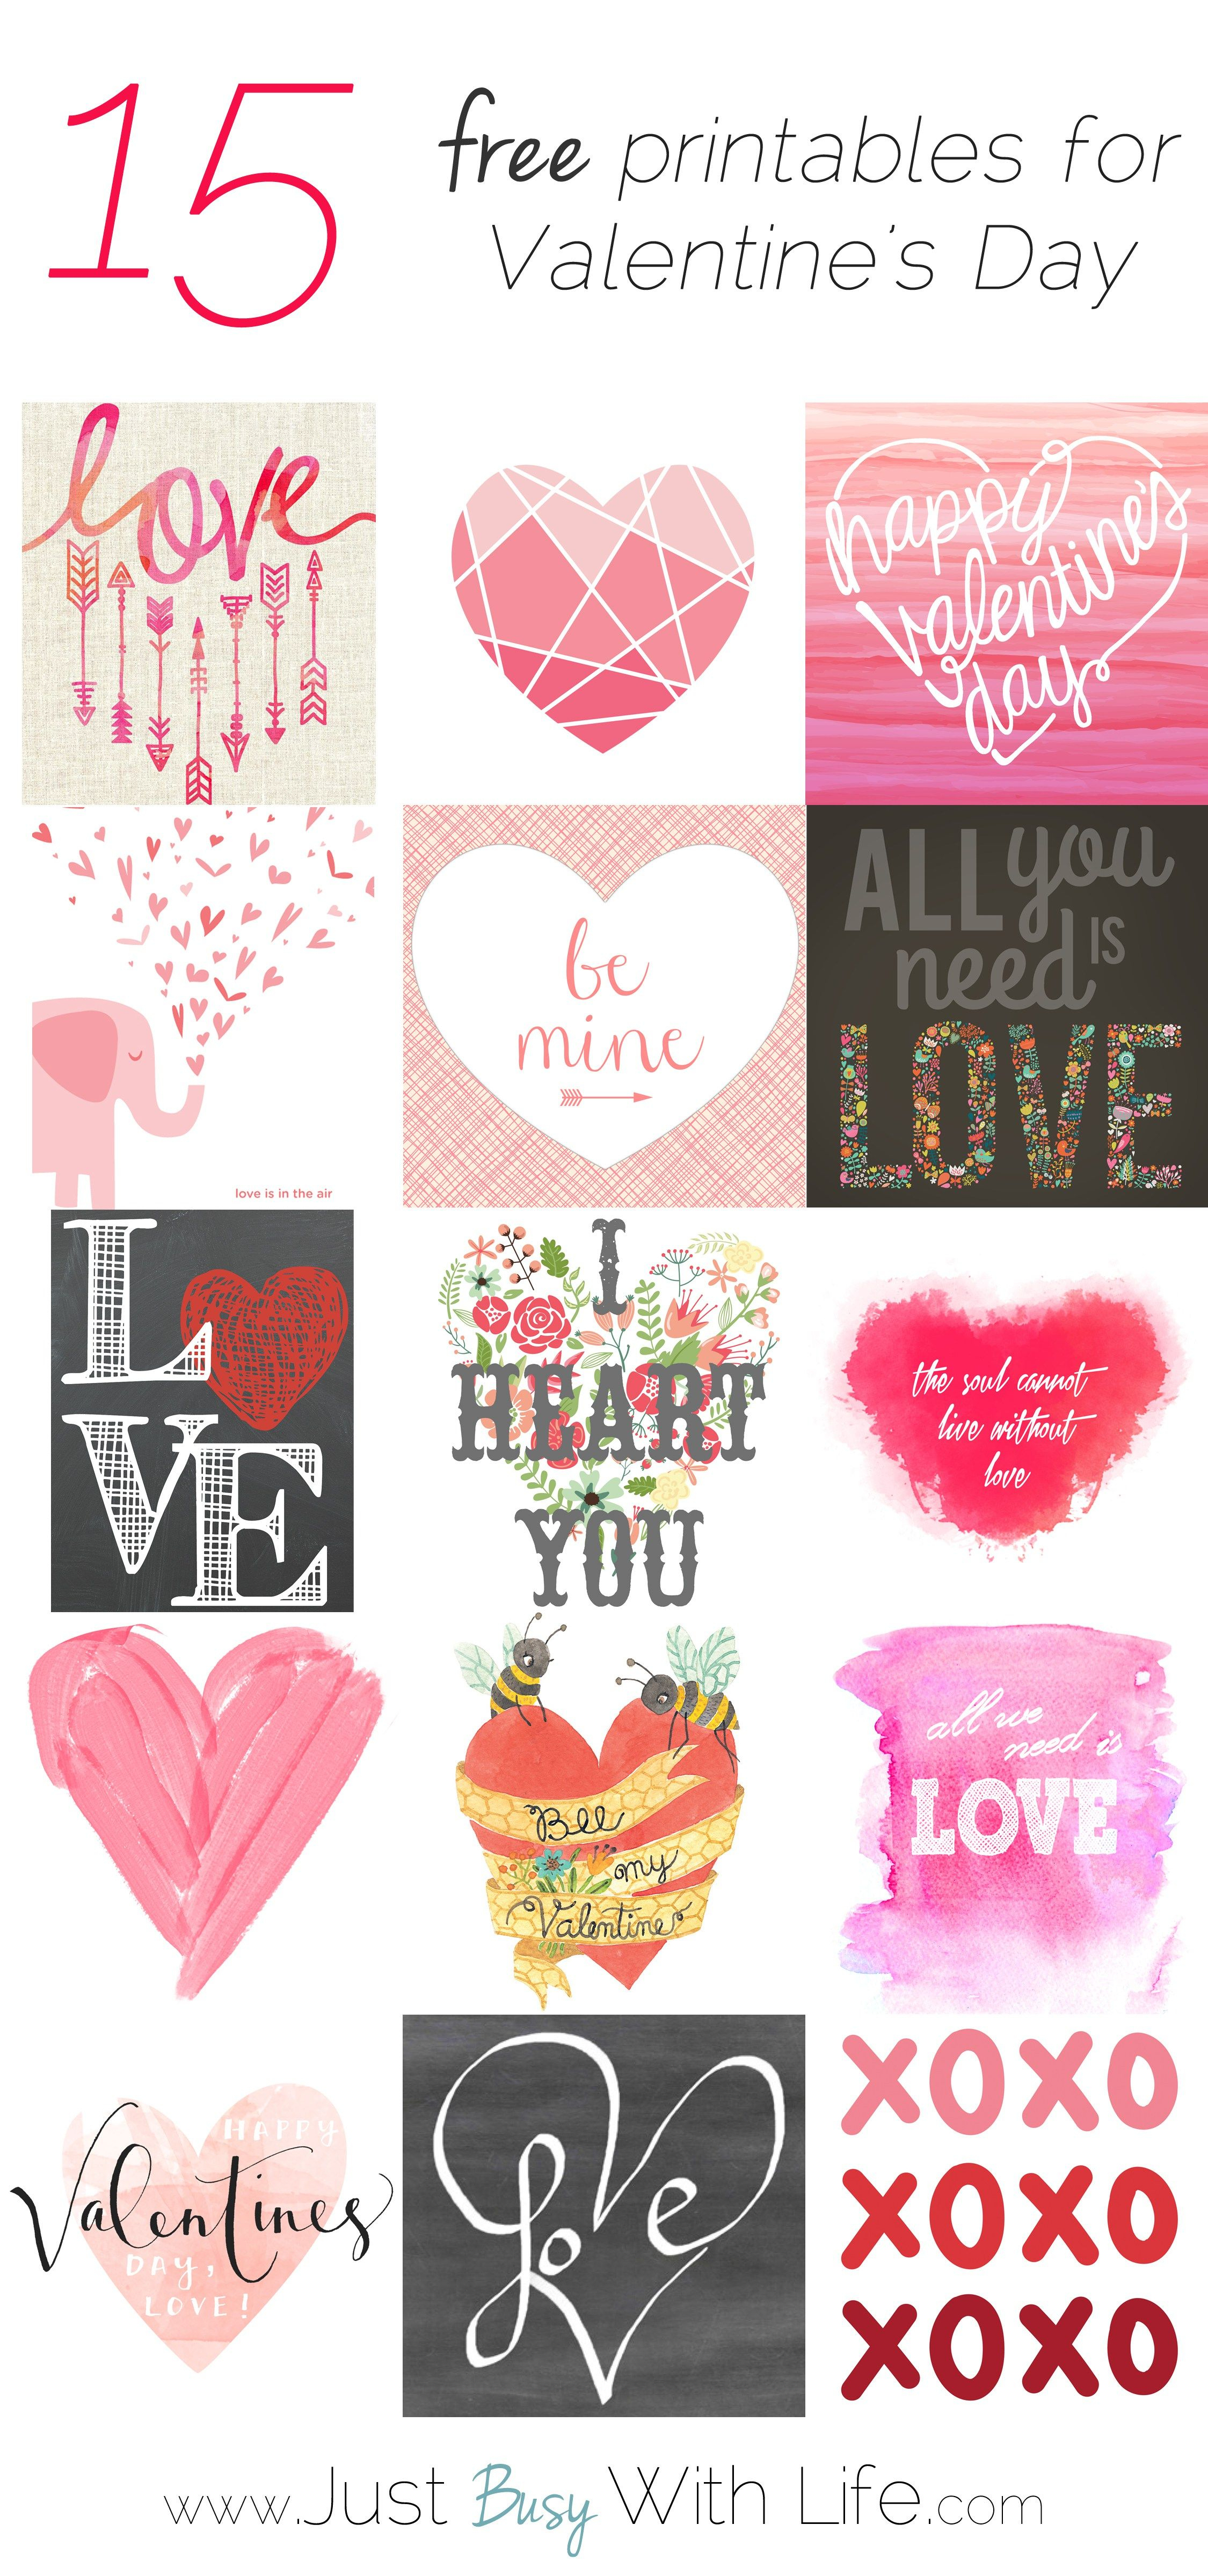 15 Free Valentine's Day Printables | Just Busy With Life - Free Printable Valentine Heart Patterns